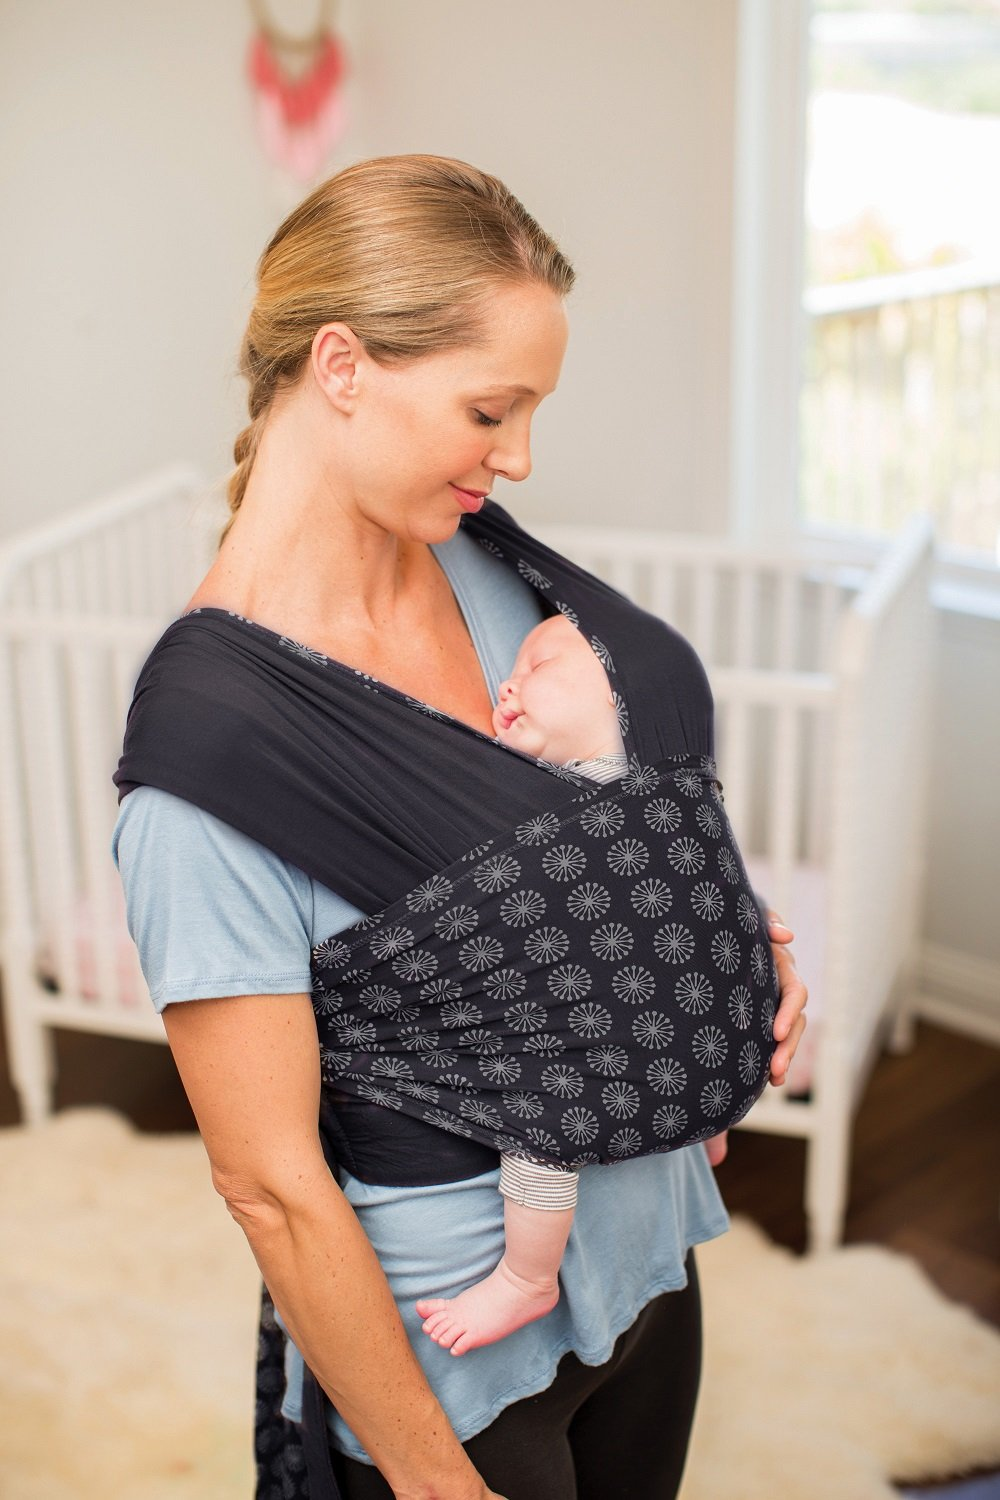 Infantino Together Pull-On Knit Carrier™ Infantino The together carrier features the comfort of a wrap, with an easy-on design The soft, stretchy fabric is gentle on little ones while providing complete, ergonomic support Adjustable back support evenly distributes the weight and makes the carrier the perfect option for most body types 2